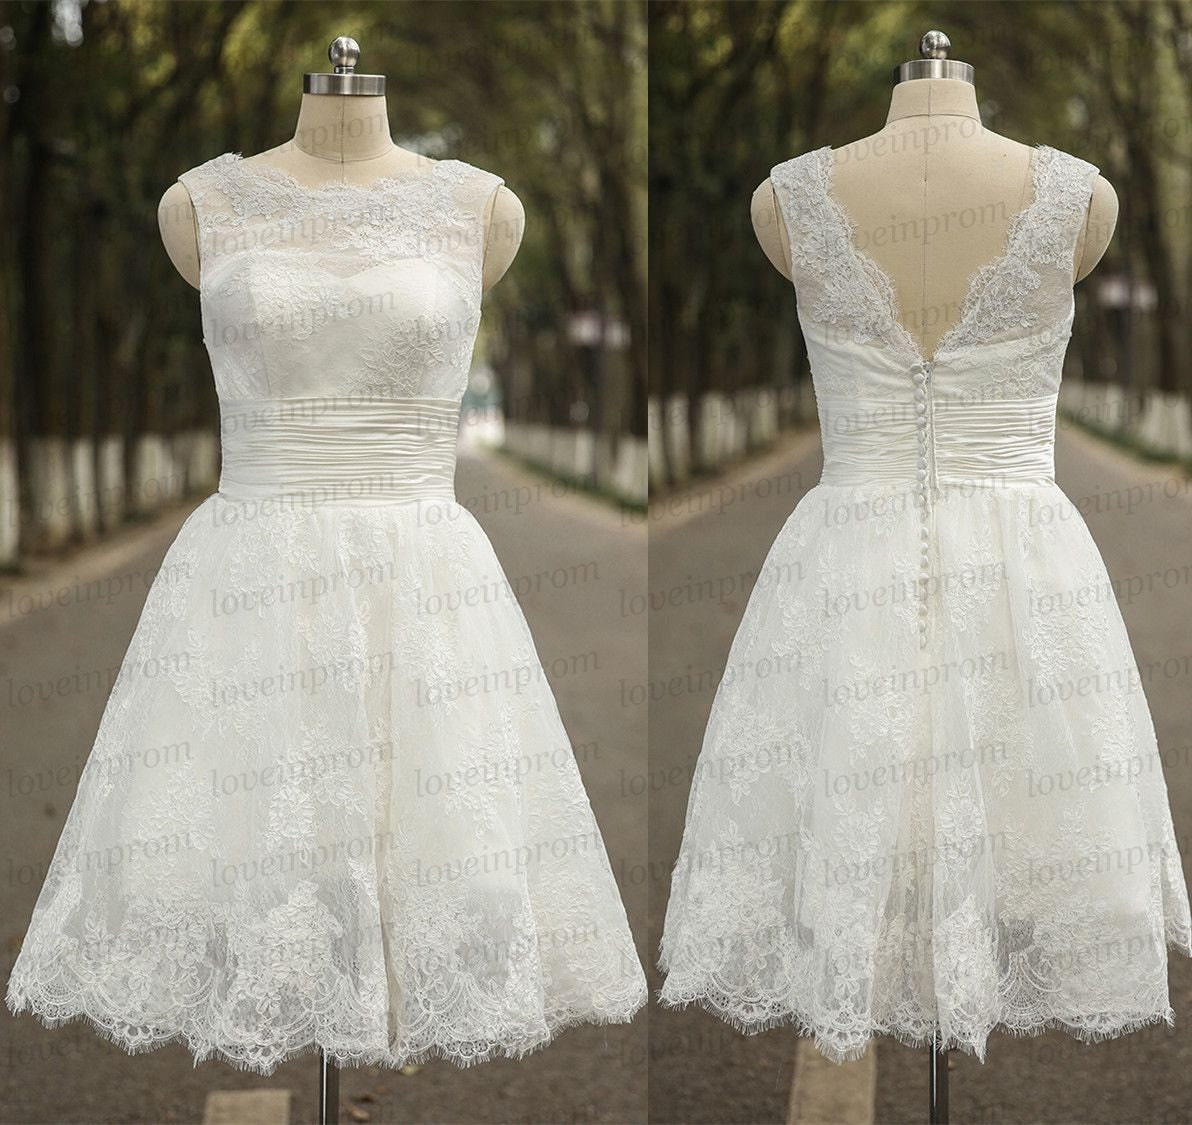 White Iovry Lace Wedding DressShort Beach Wedding DressHigh